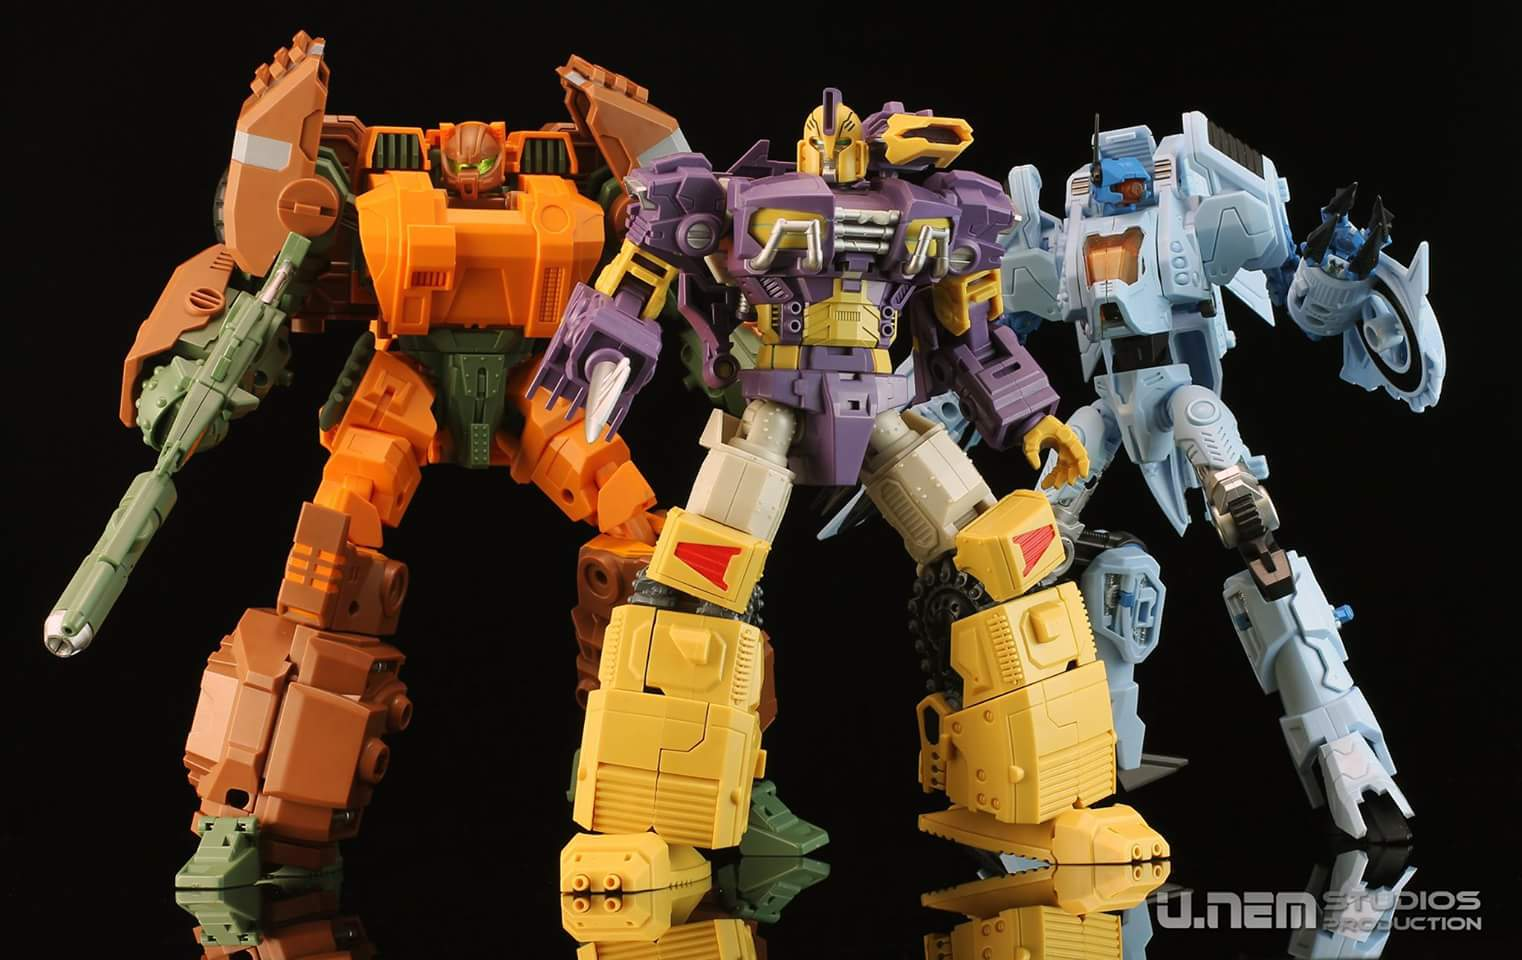 [Mastermind Creations] Produit Tiers - R-23 Dicamus - aka Roadbuster/Cahot des Wreckers IDW CBCTpdt3